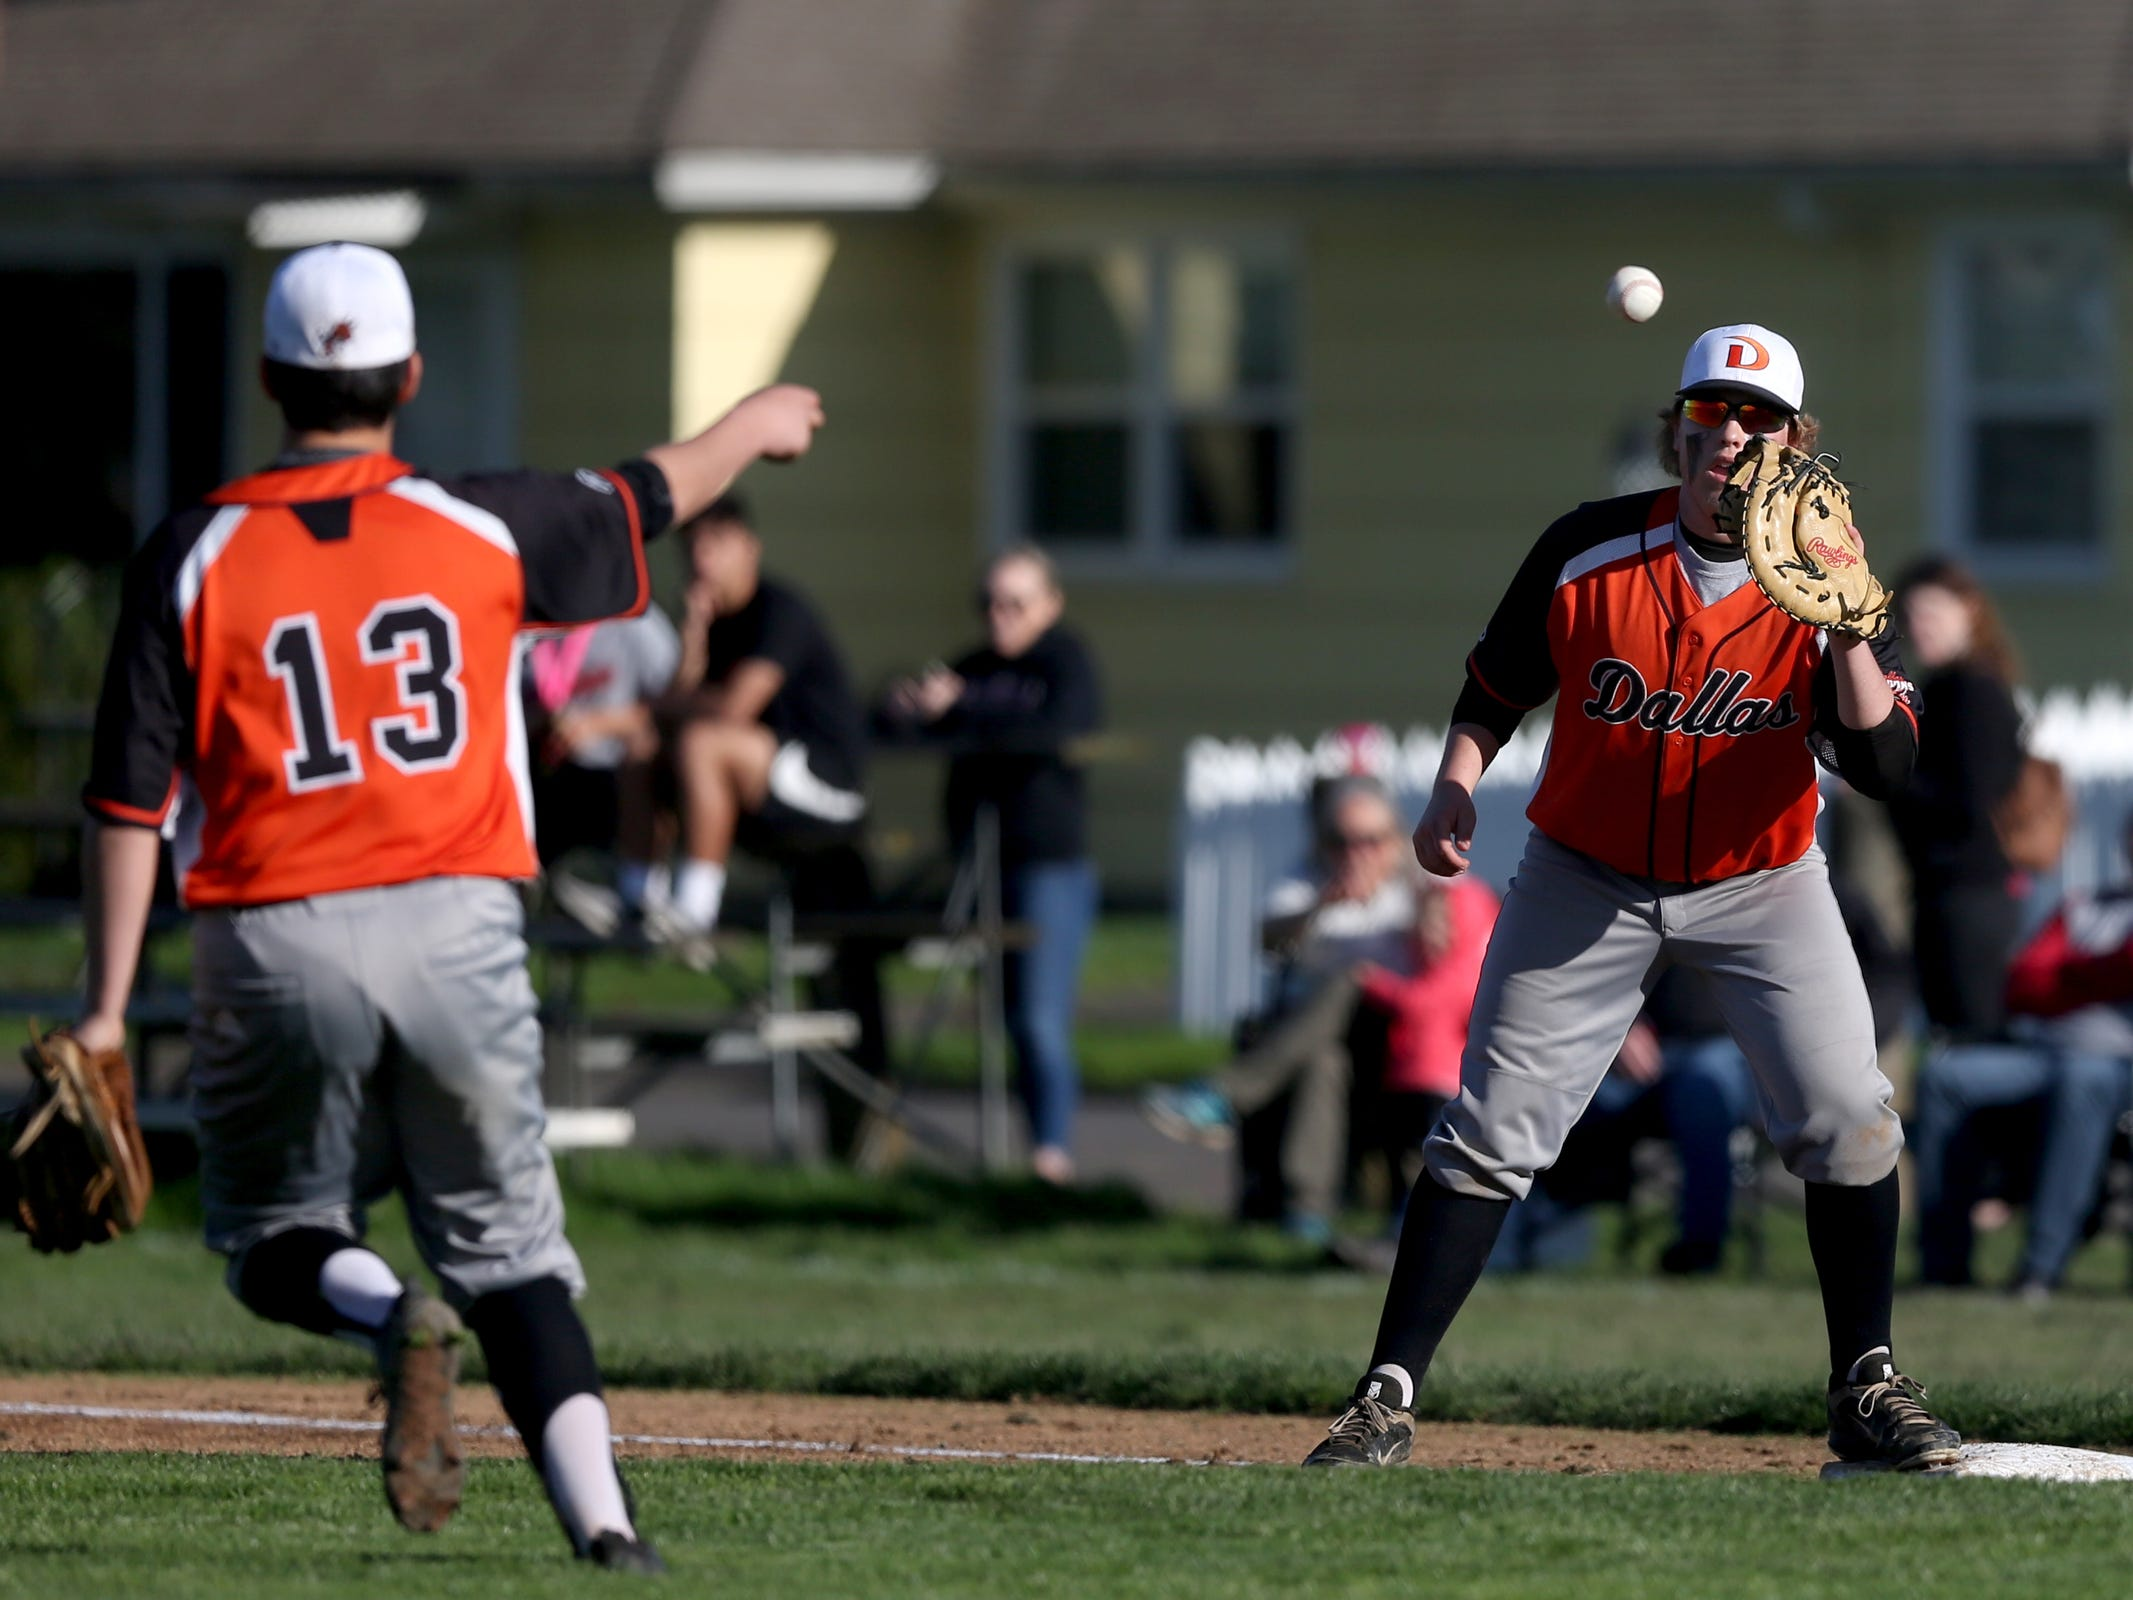 The Dallas first baseman makes a catch for an out from the pitcher in the Dallas vs. North Salem baseball game in Salem on April 12, 2019.